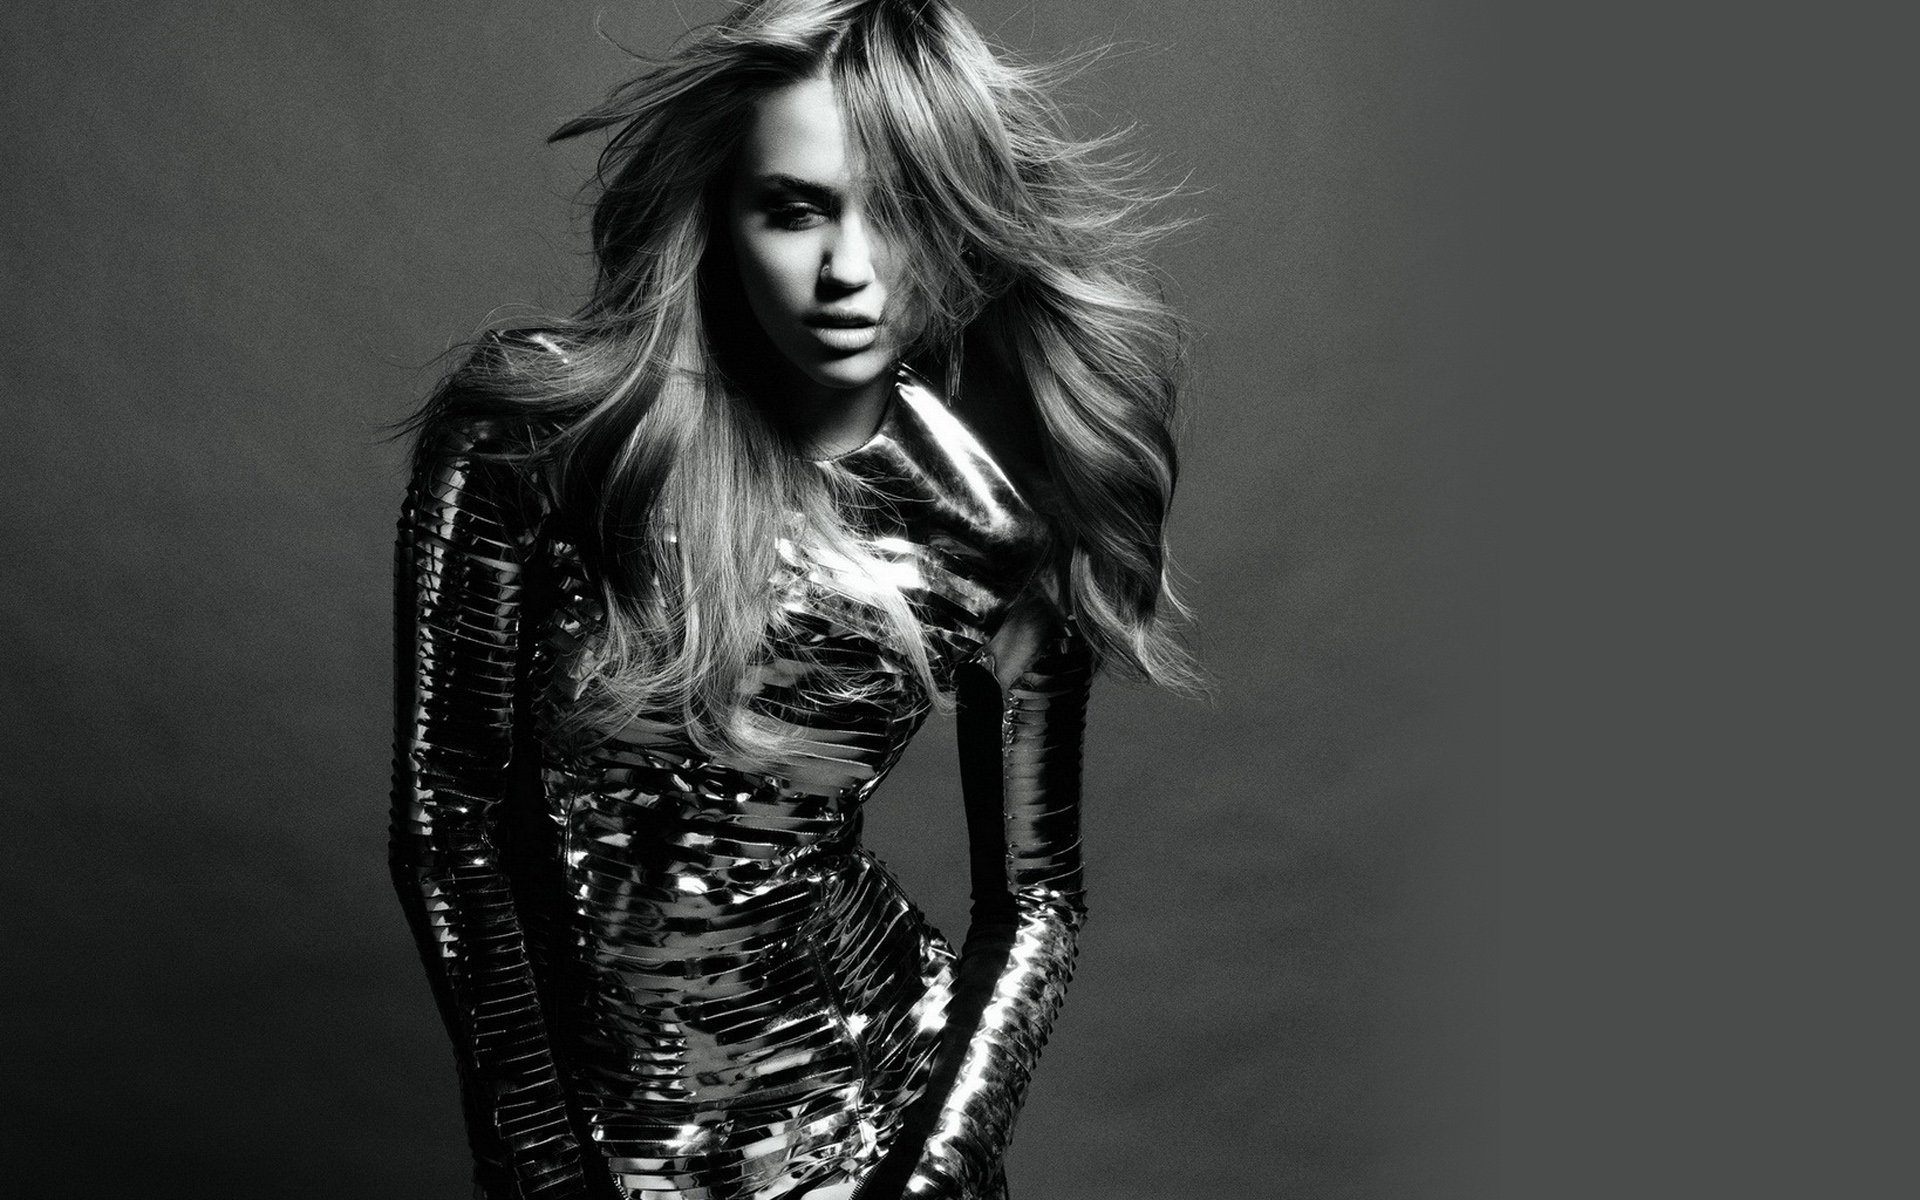 Miley Cyrus Full HD Wallpaper And Background Image